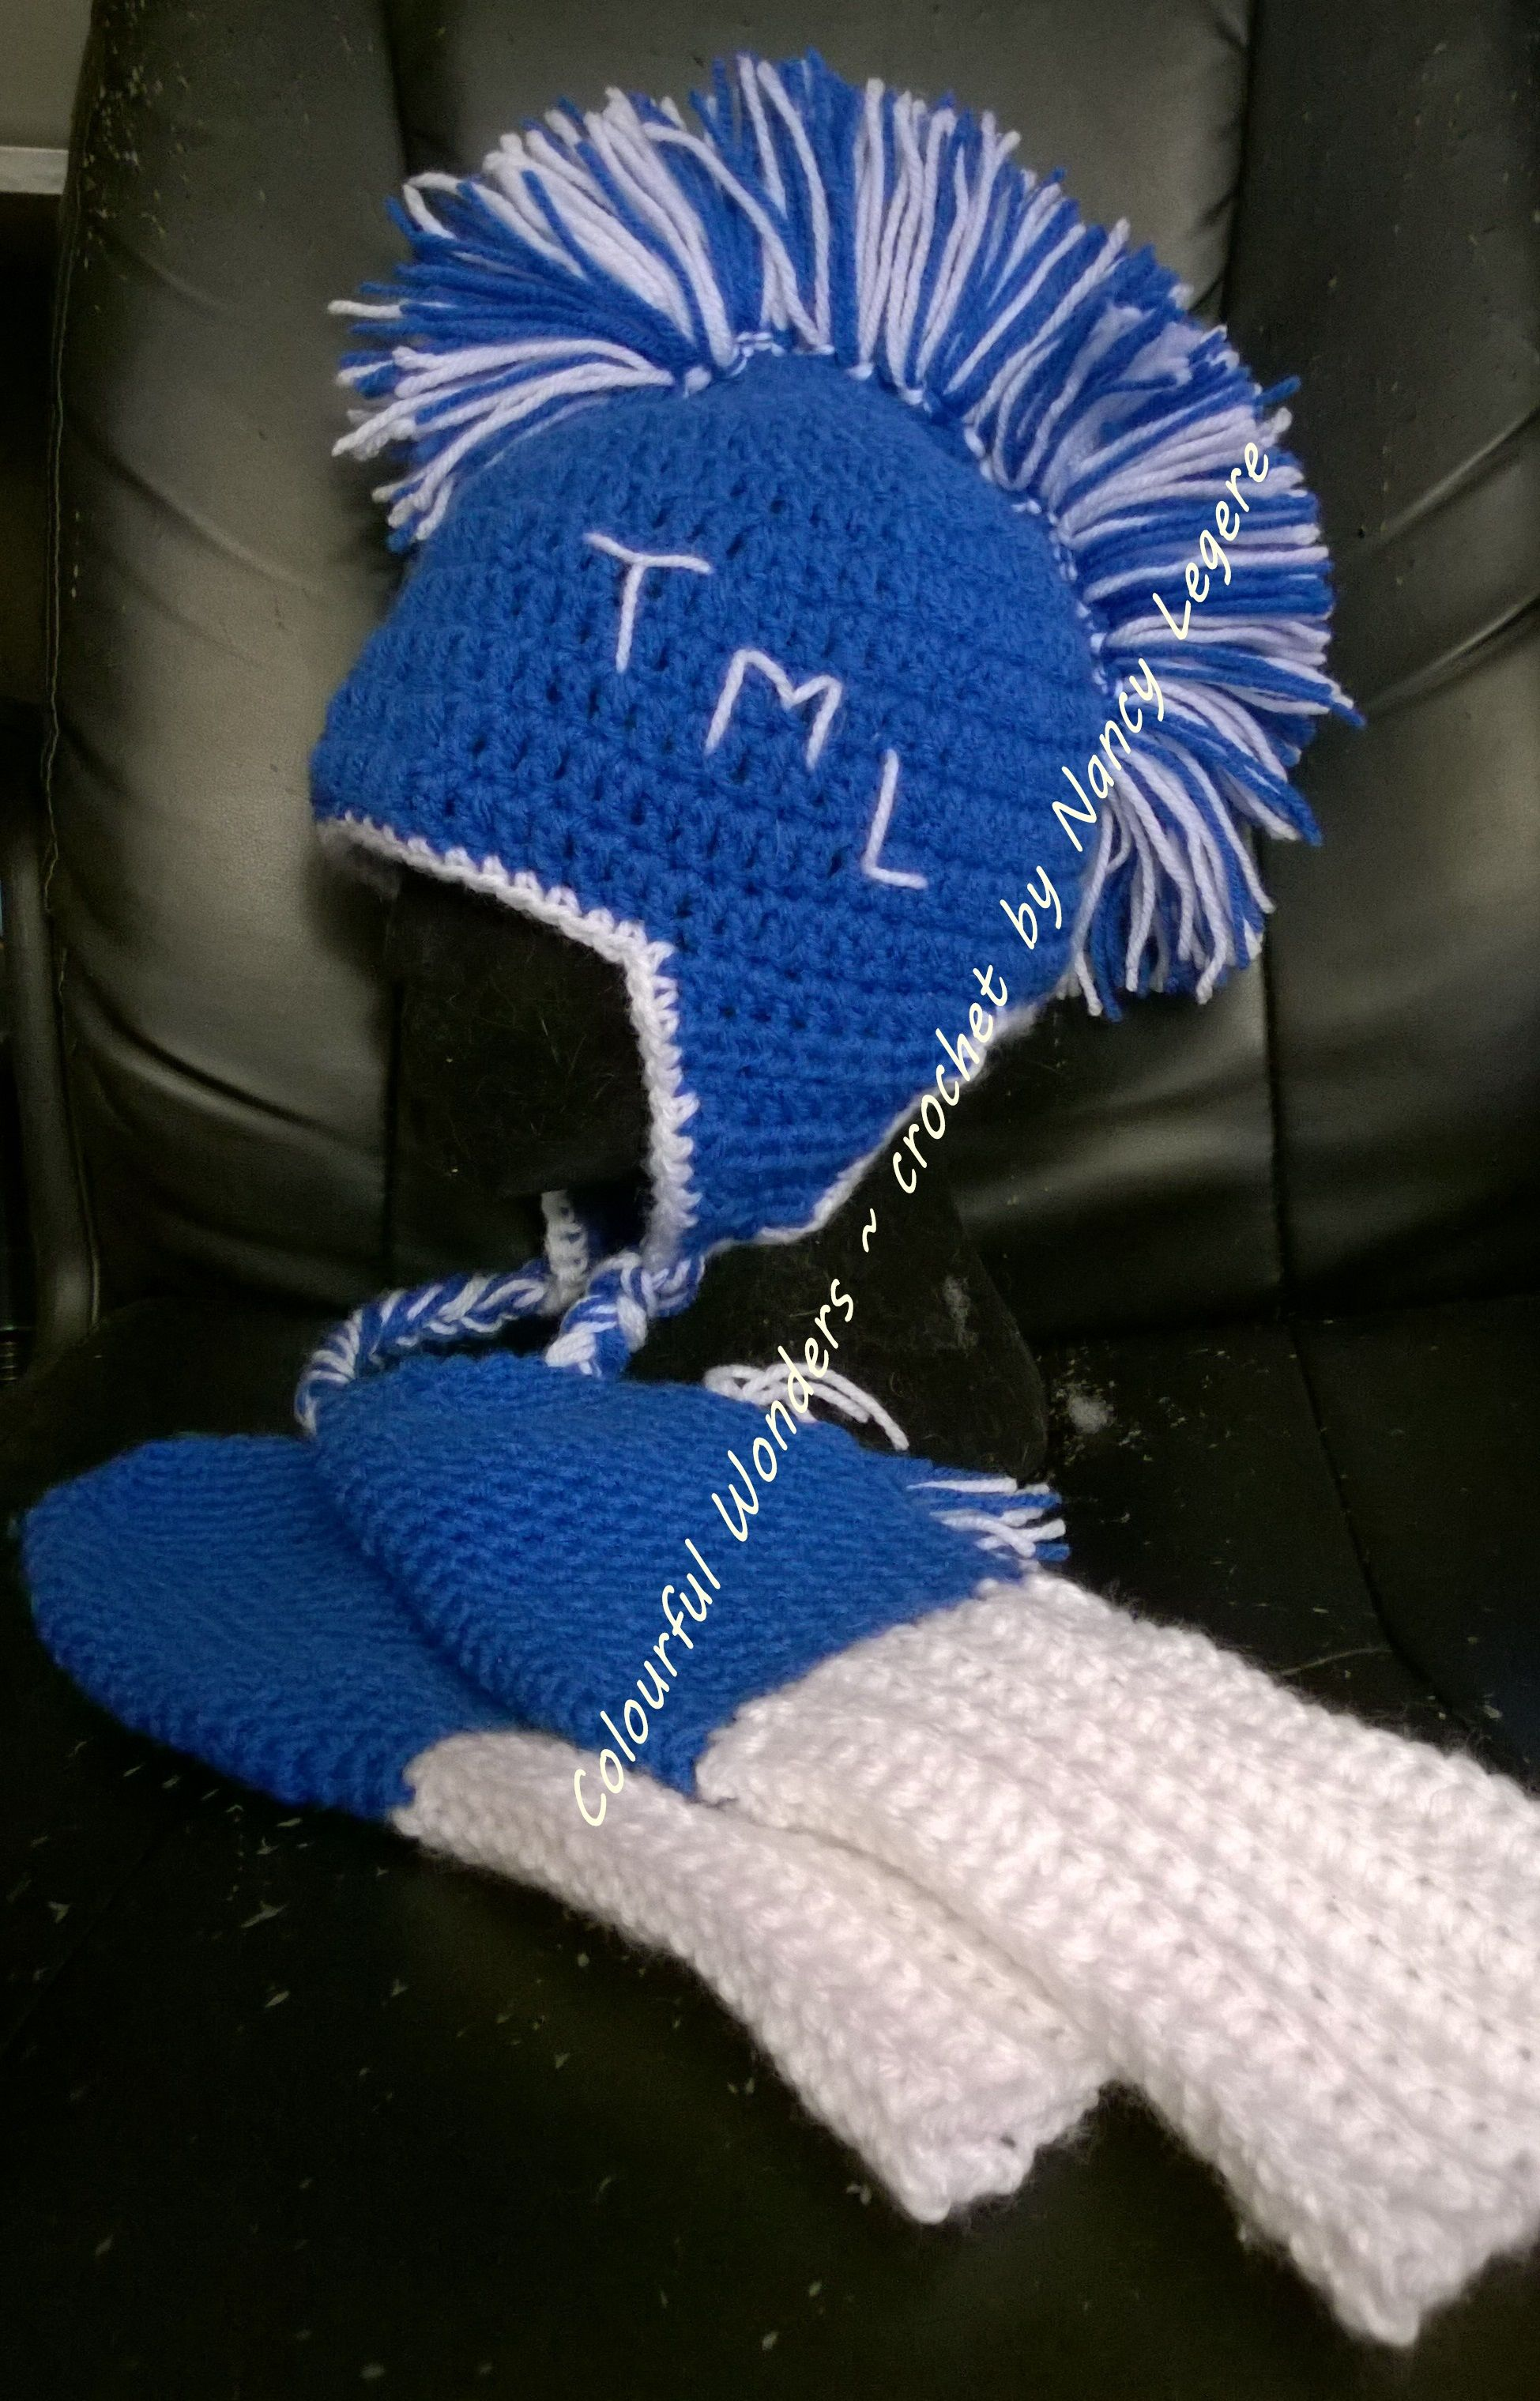 Crochet toronto maple leaf mohawk hat with matching mitts made by